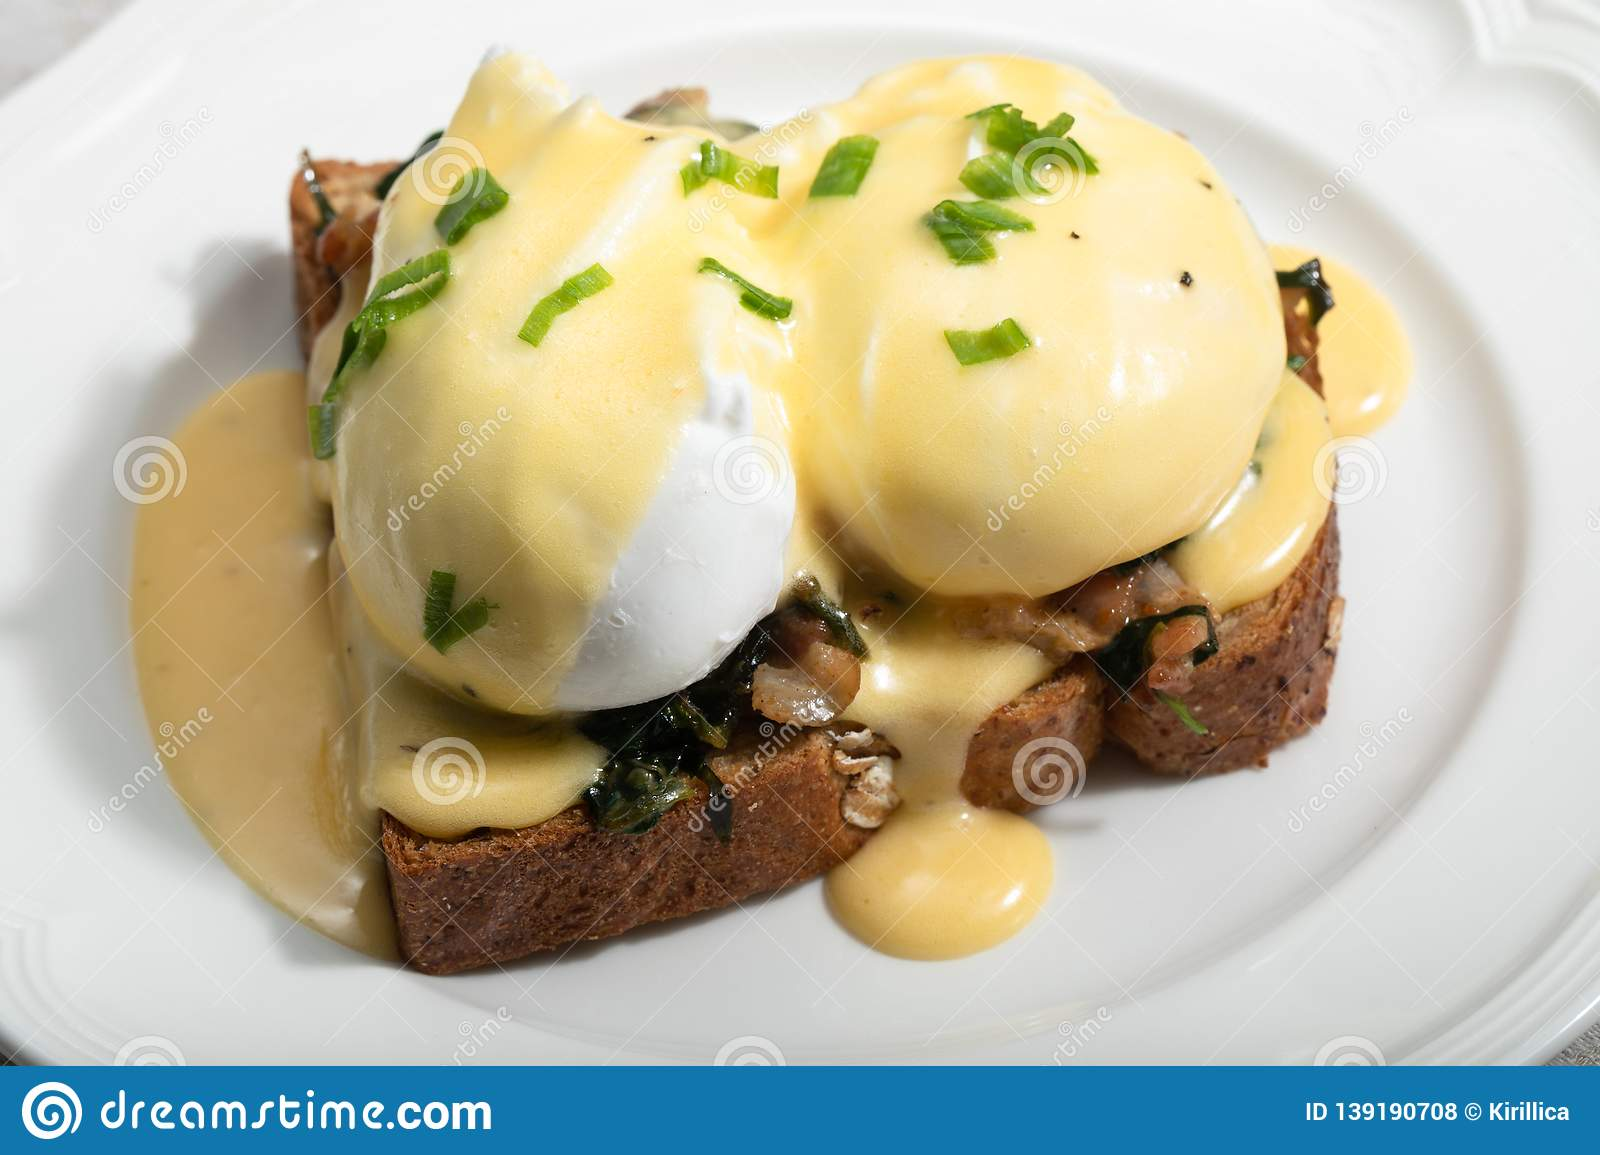 Eggs Benedict for brunch